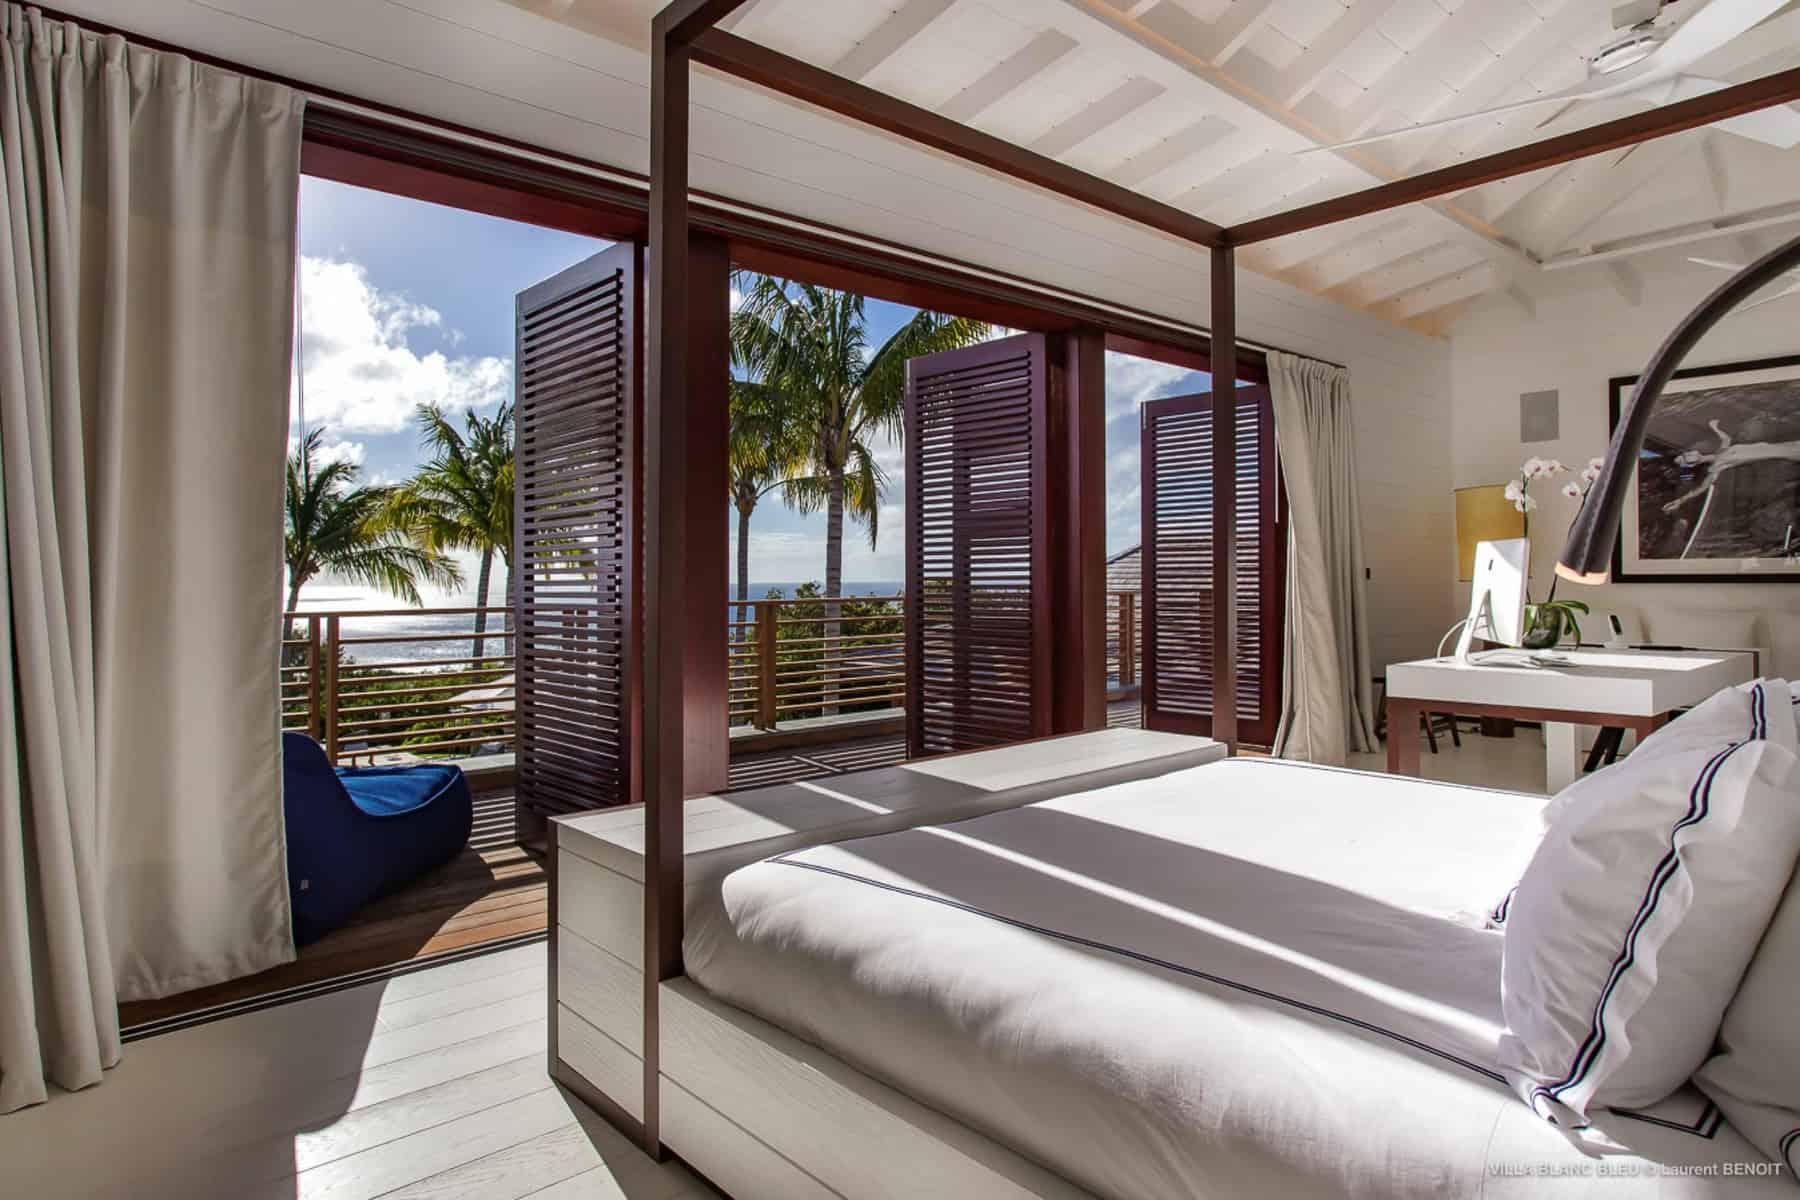 Bedroom with view Villa Blanc Bleu St Barths